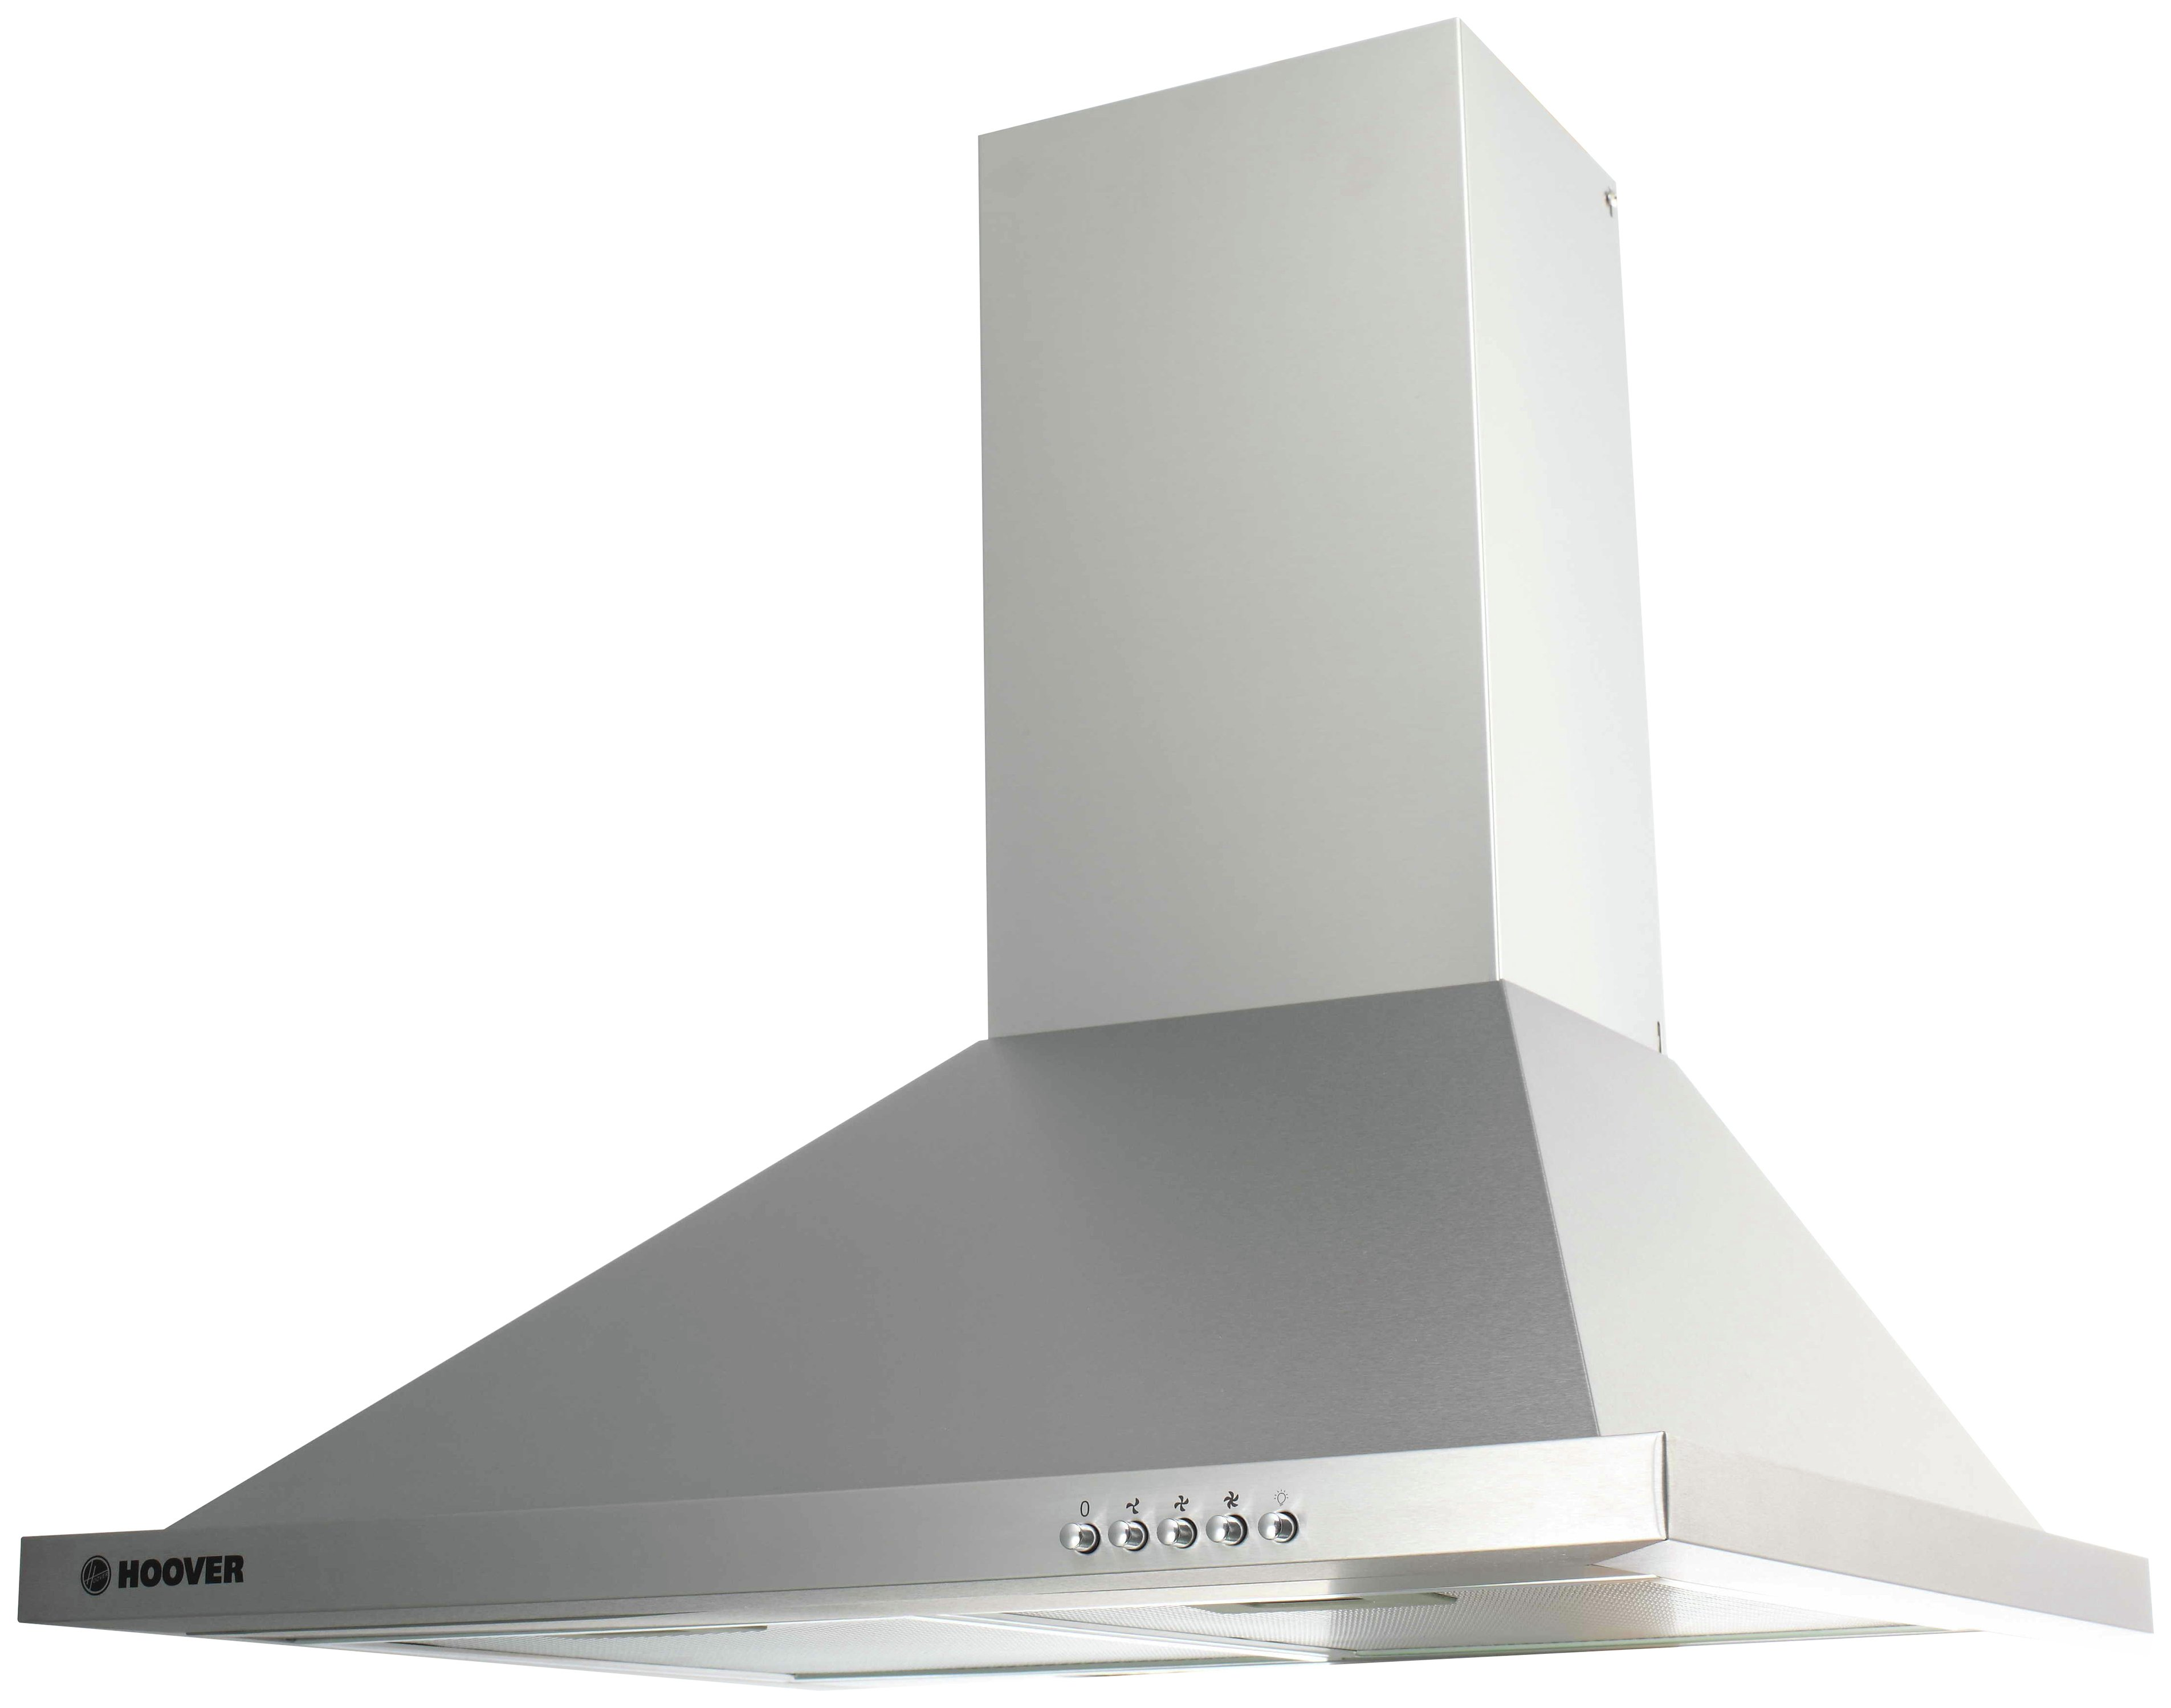 hoover-hech6162x-cooker-hood-stainless-steel